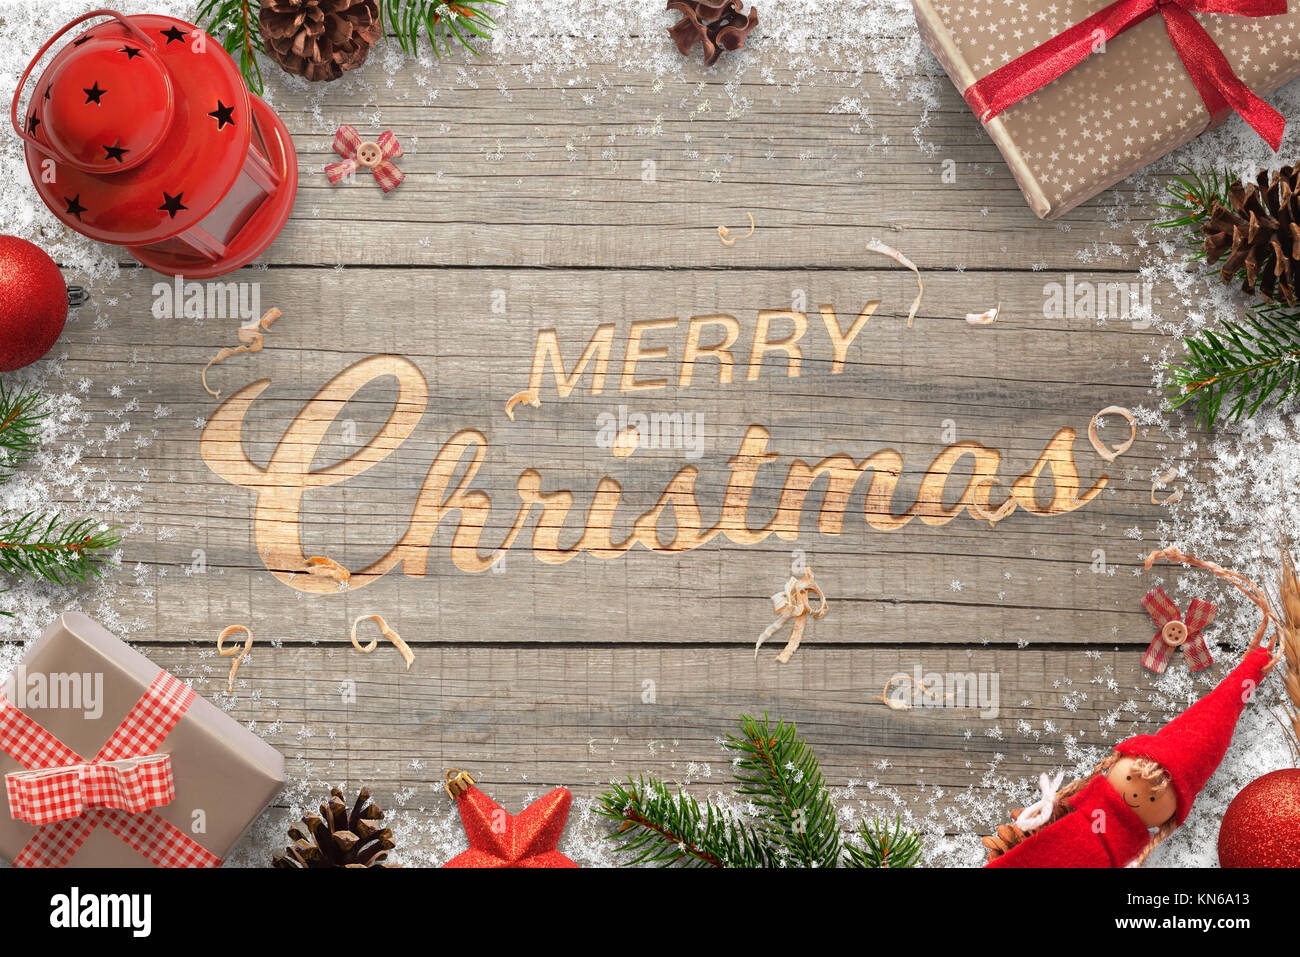 Creative hand carved Merry Christmas text in a wooden surface. Surrounded with Christmas decorations. Top view of - Stock Image